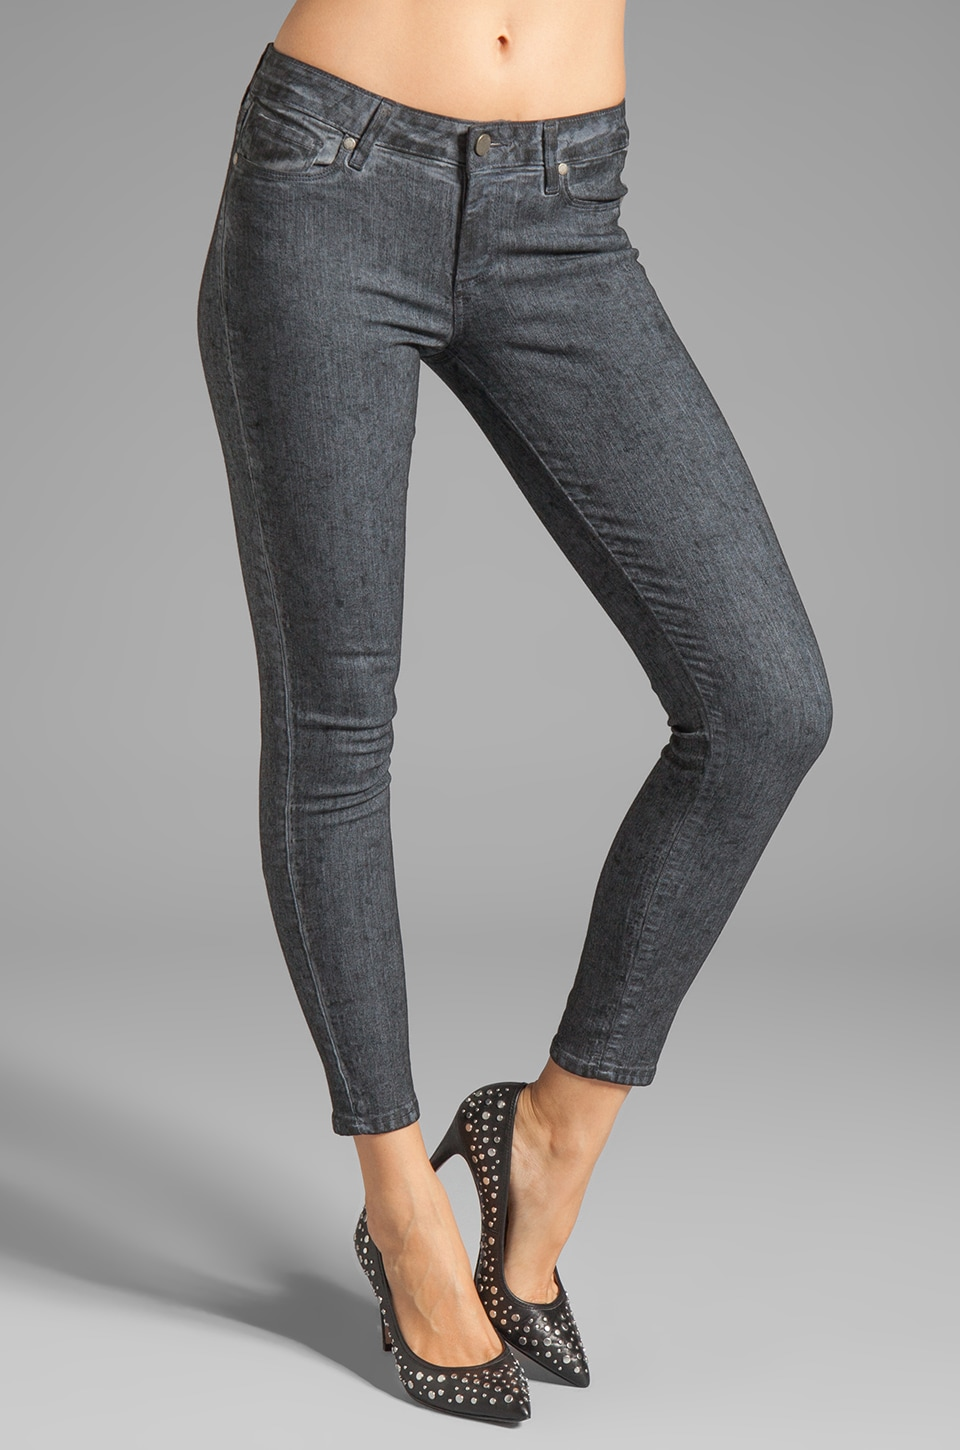 Paige Denim Verdugo Ankle Skinny in Black Crystalline